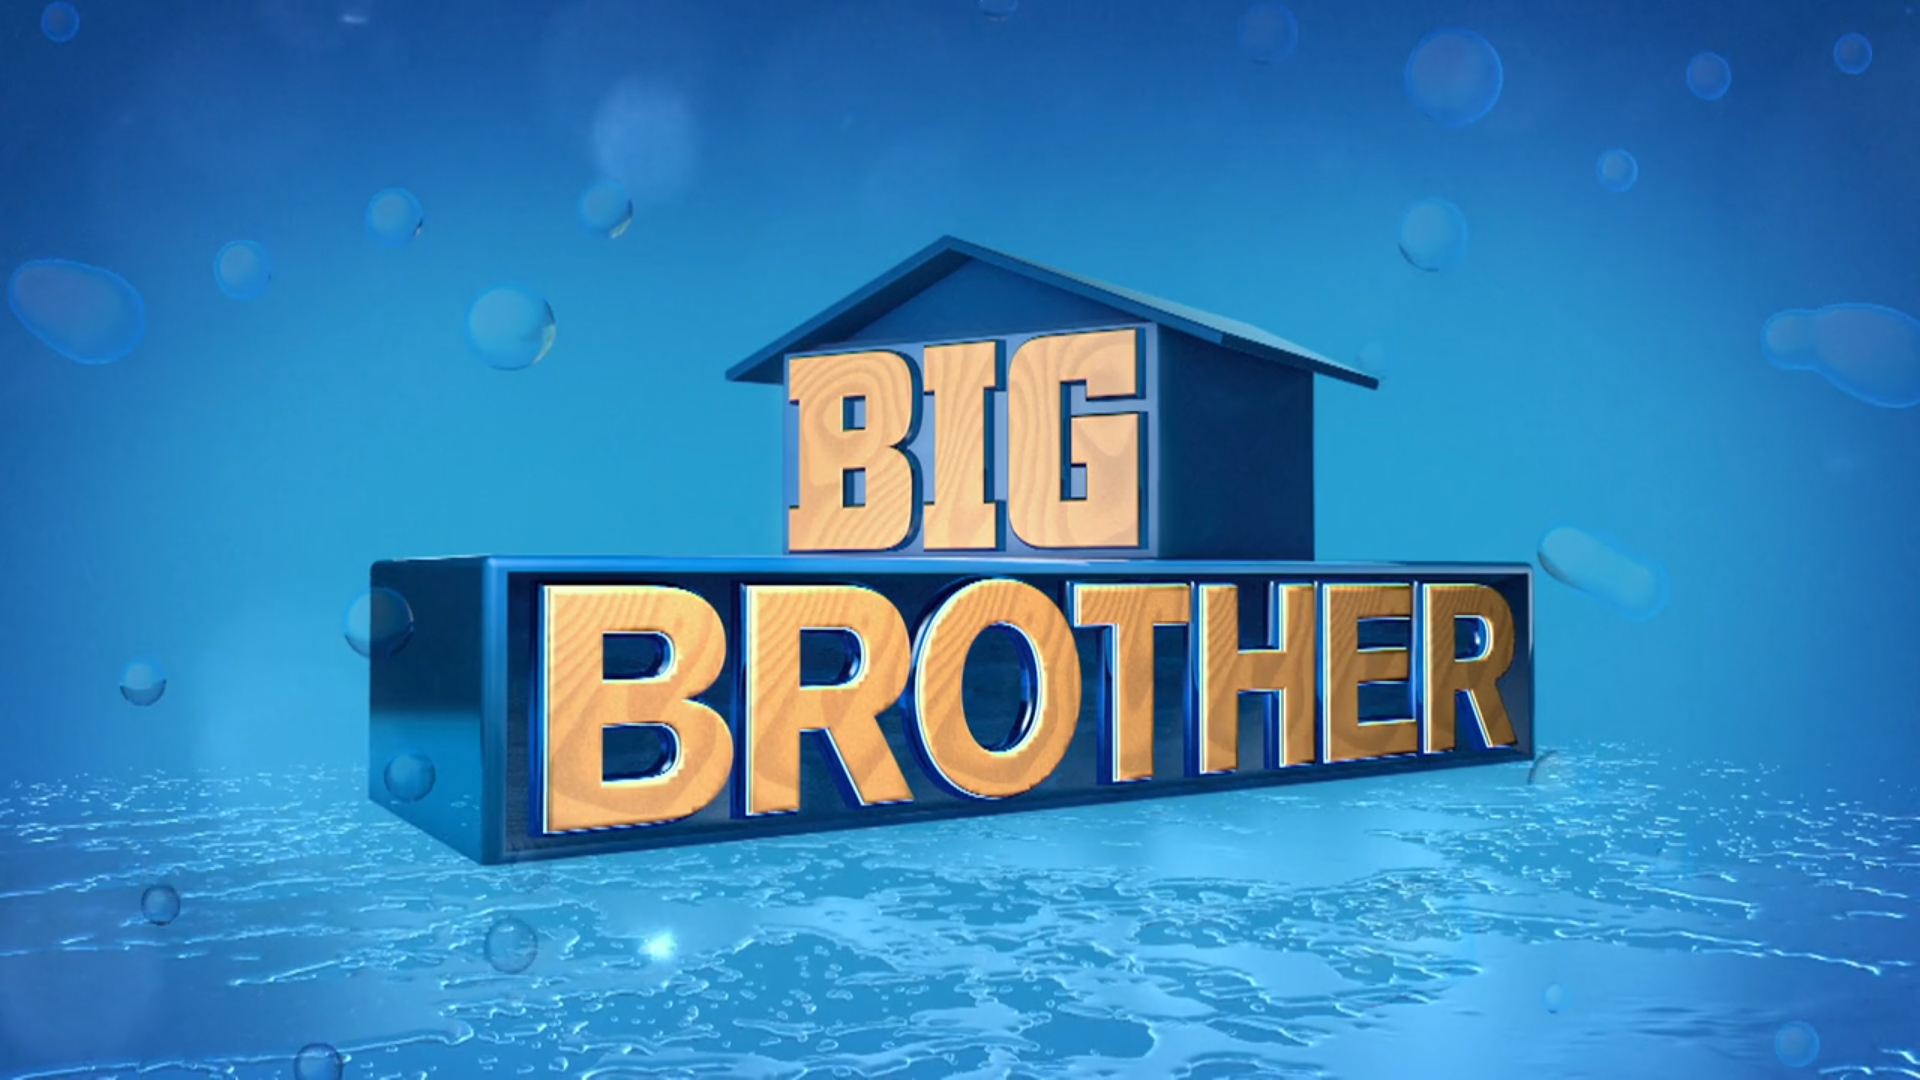 big brother 1984 quotes